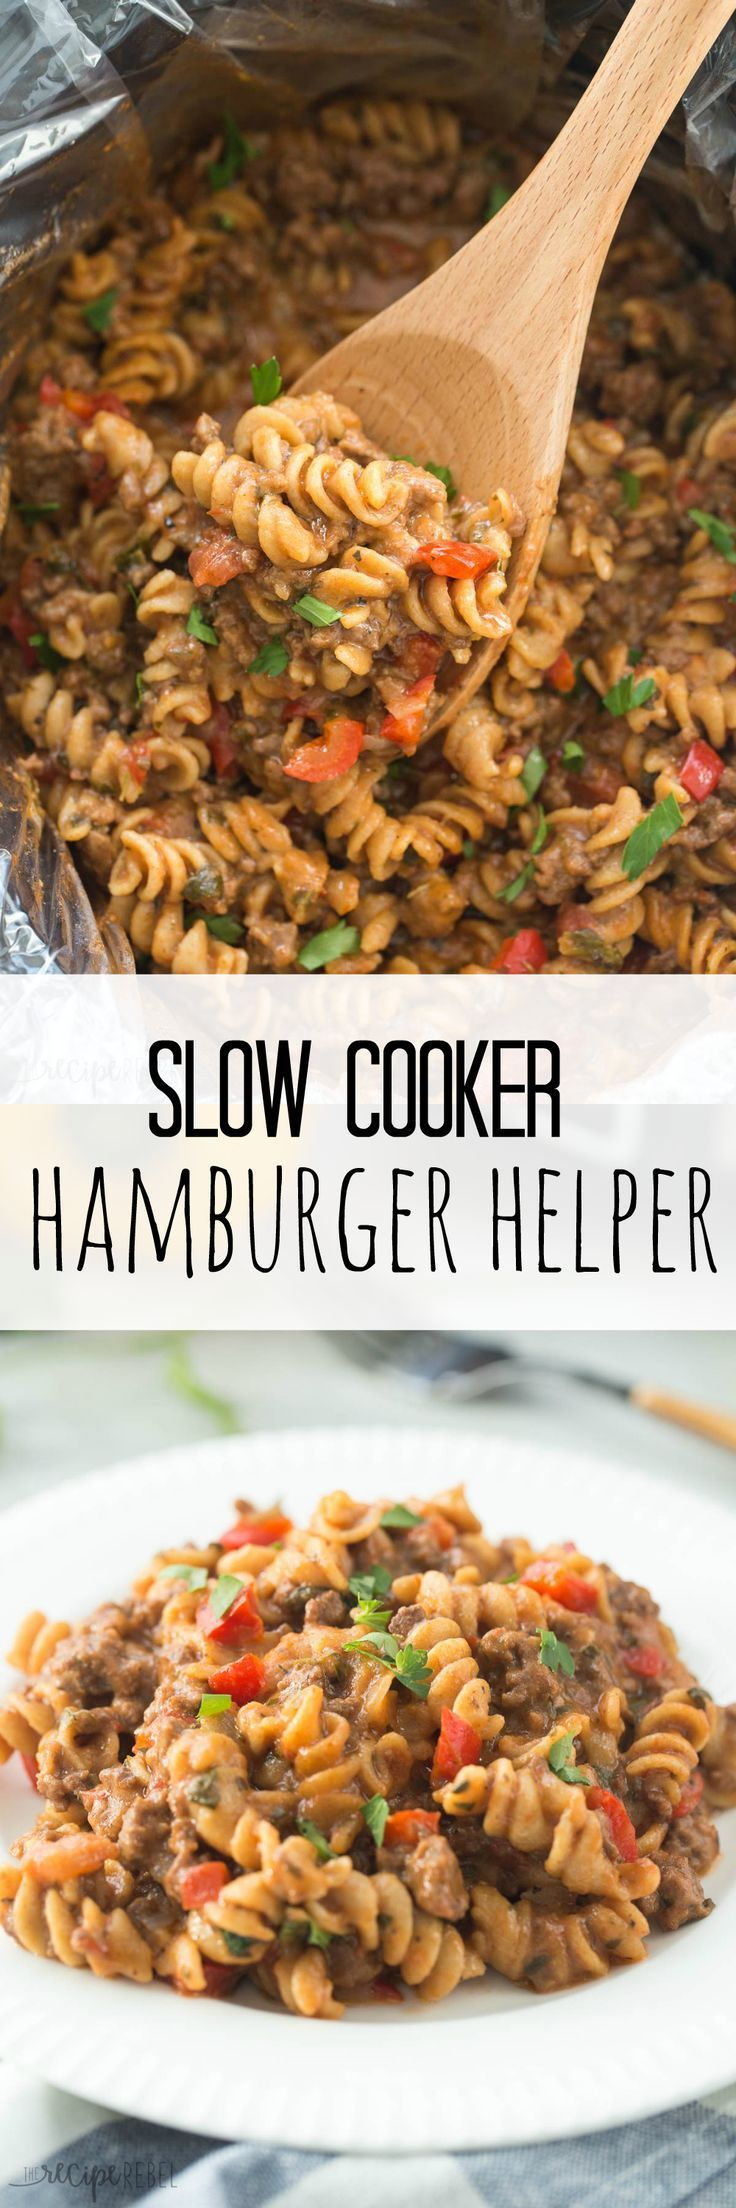 A healthier, homemade version of Hamburger Helper made completely in the slow cooker — yes, even the pasta! (And no, it's not mushy and overcooked!)